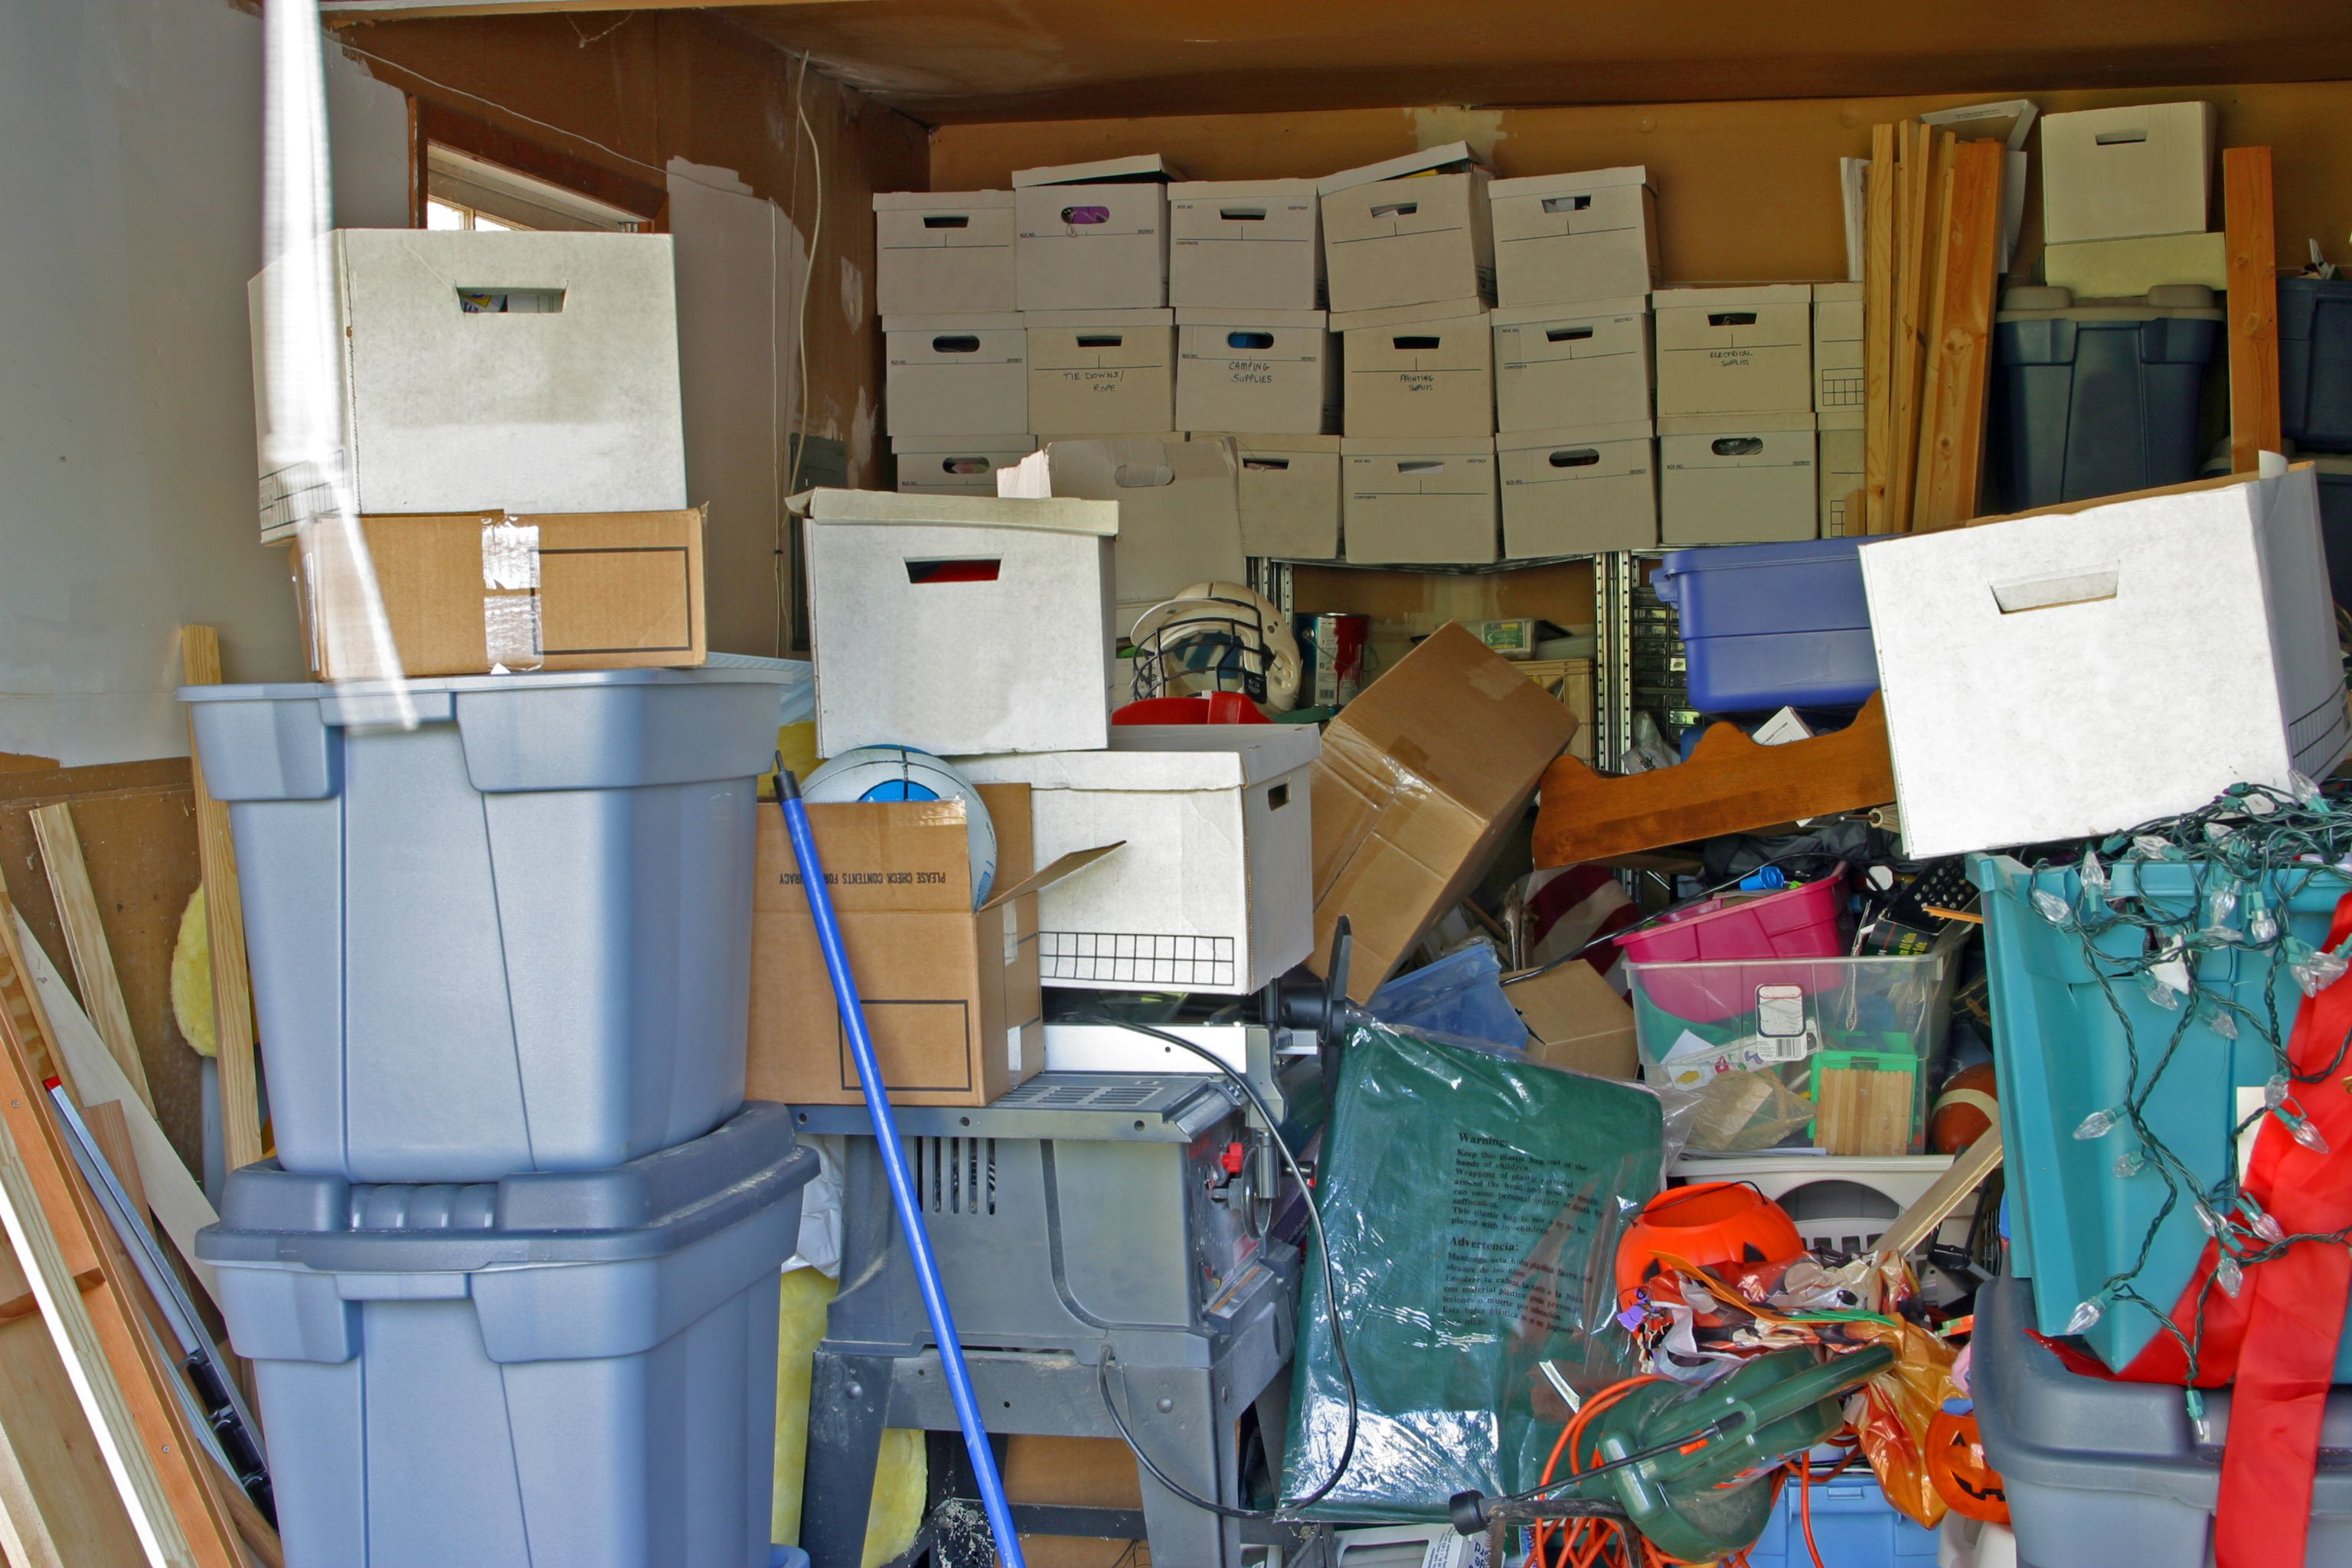 Garage full of clutter including boxes and Christmas lights.